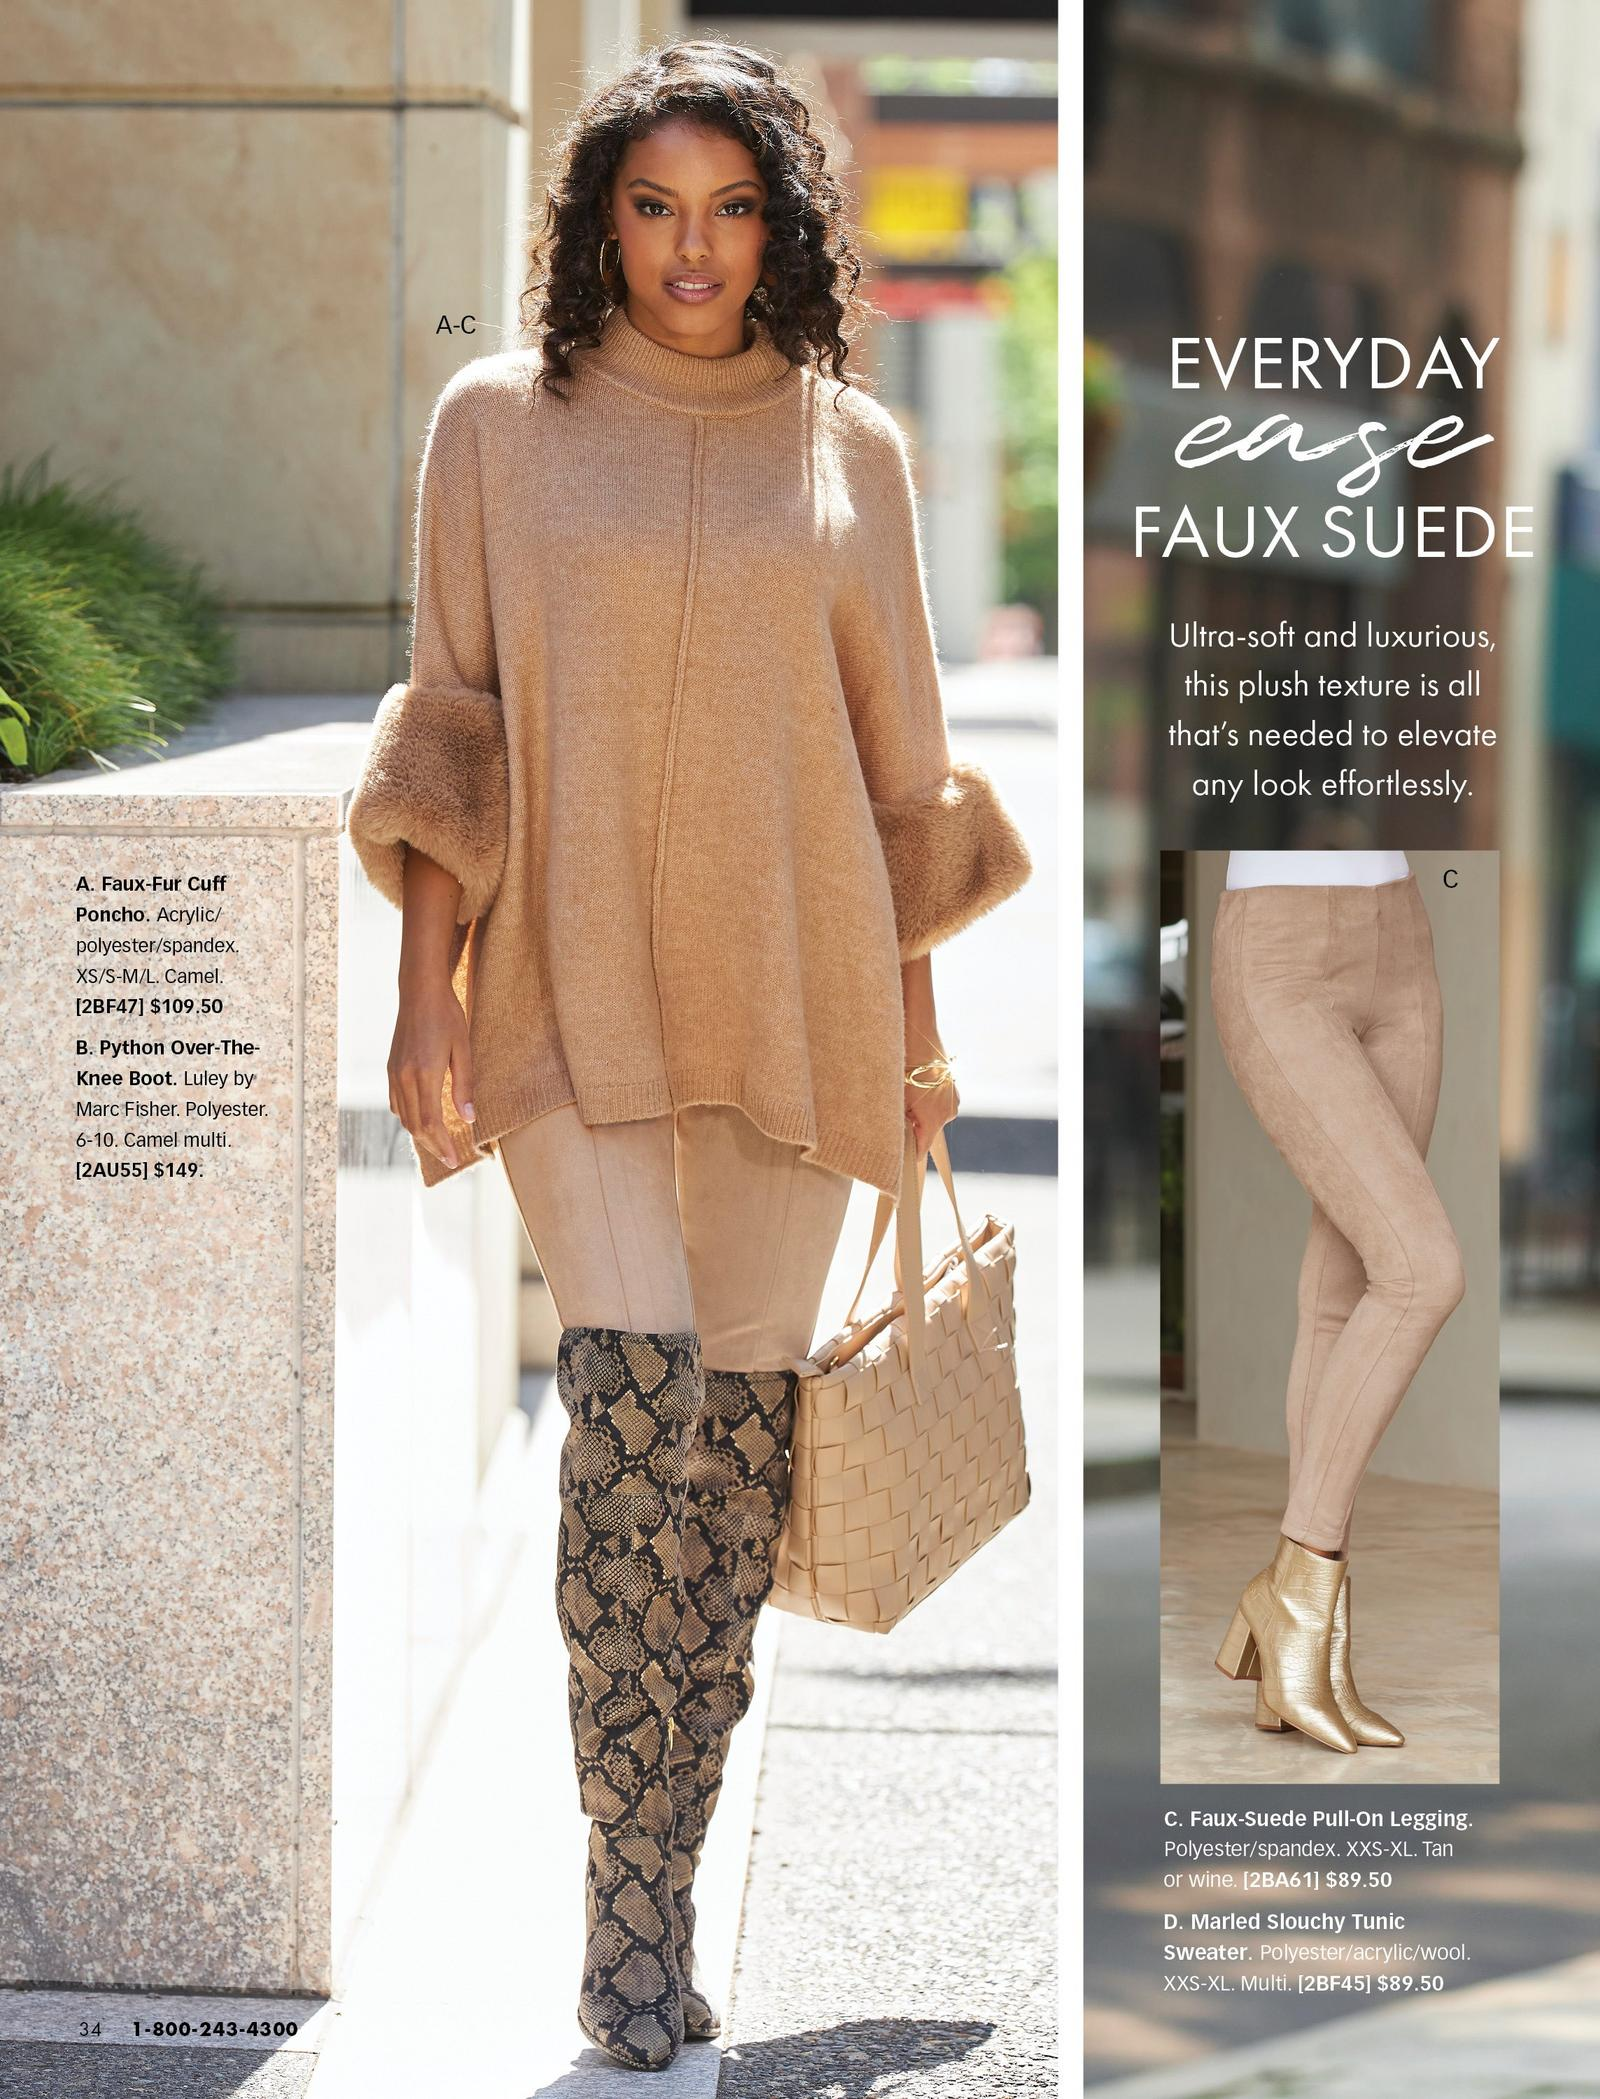 model wearing a camel colored faux-fur cuff poncho, tan faux-suede leggings, and over-the-knee python print boots. also shown: the suede leggings.